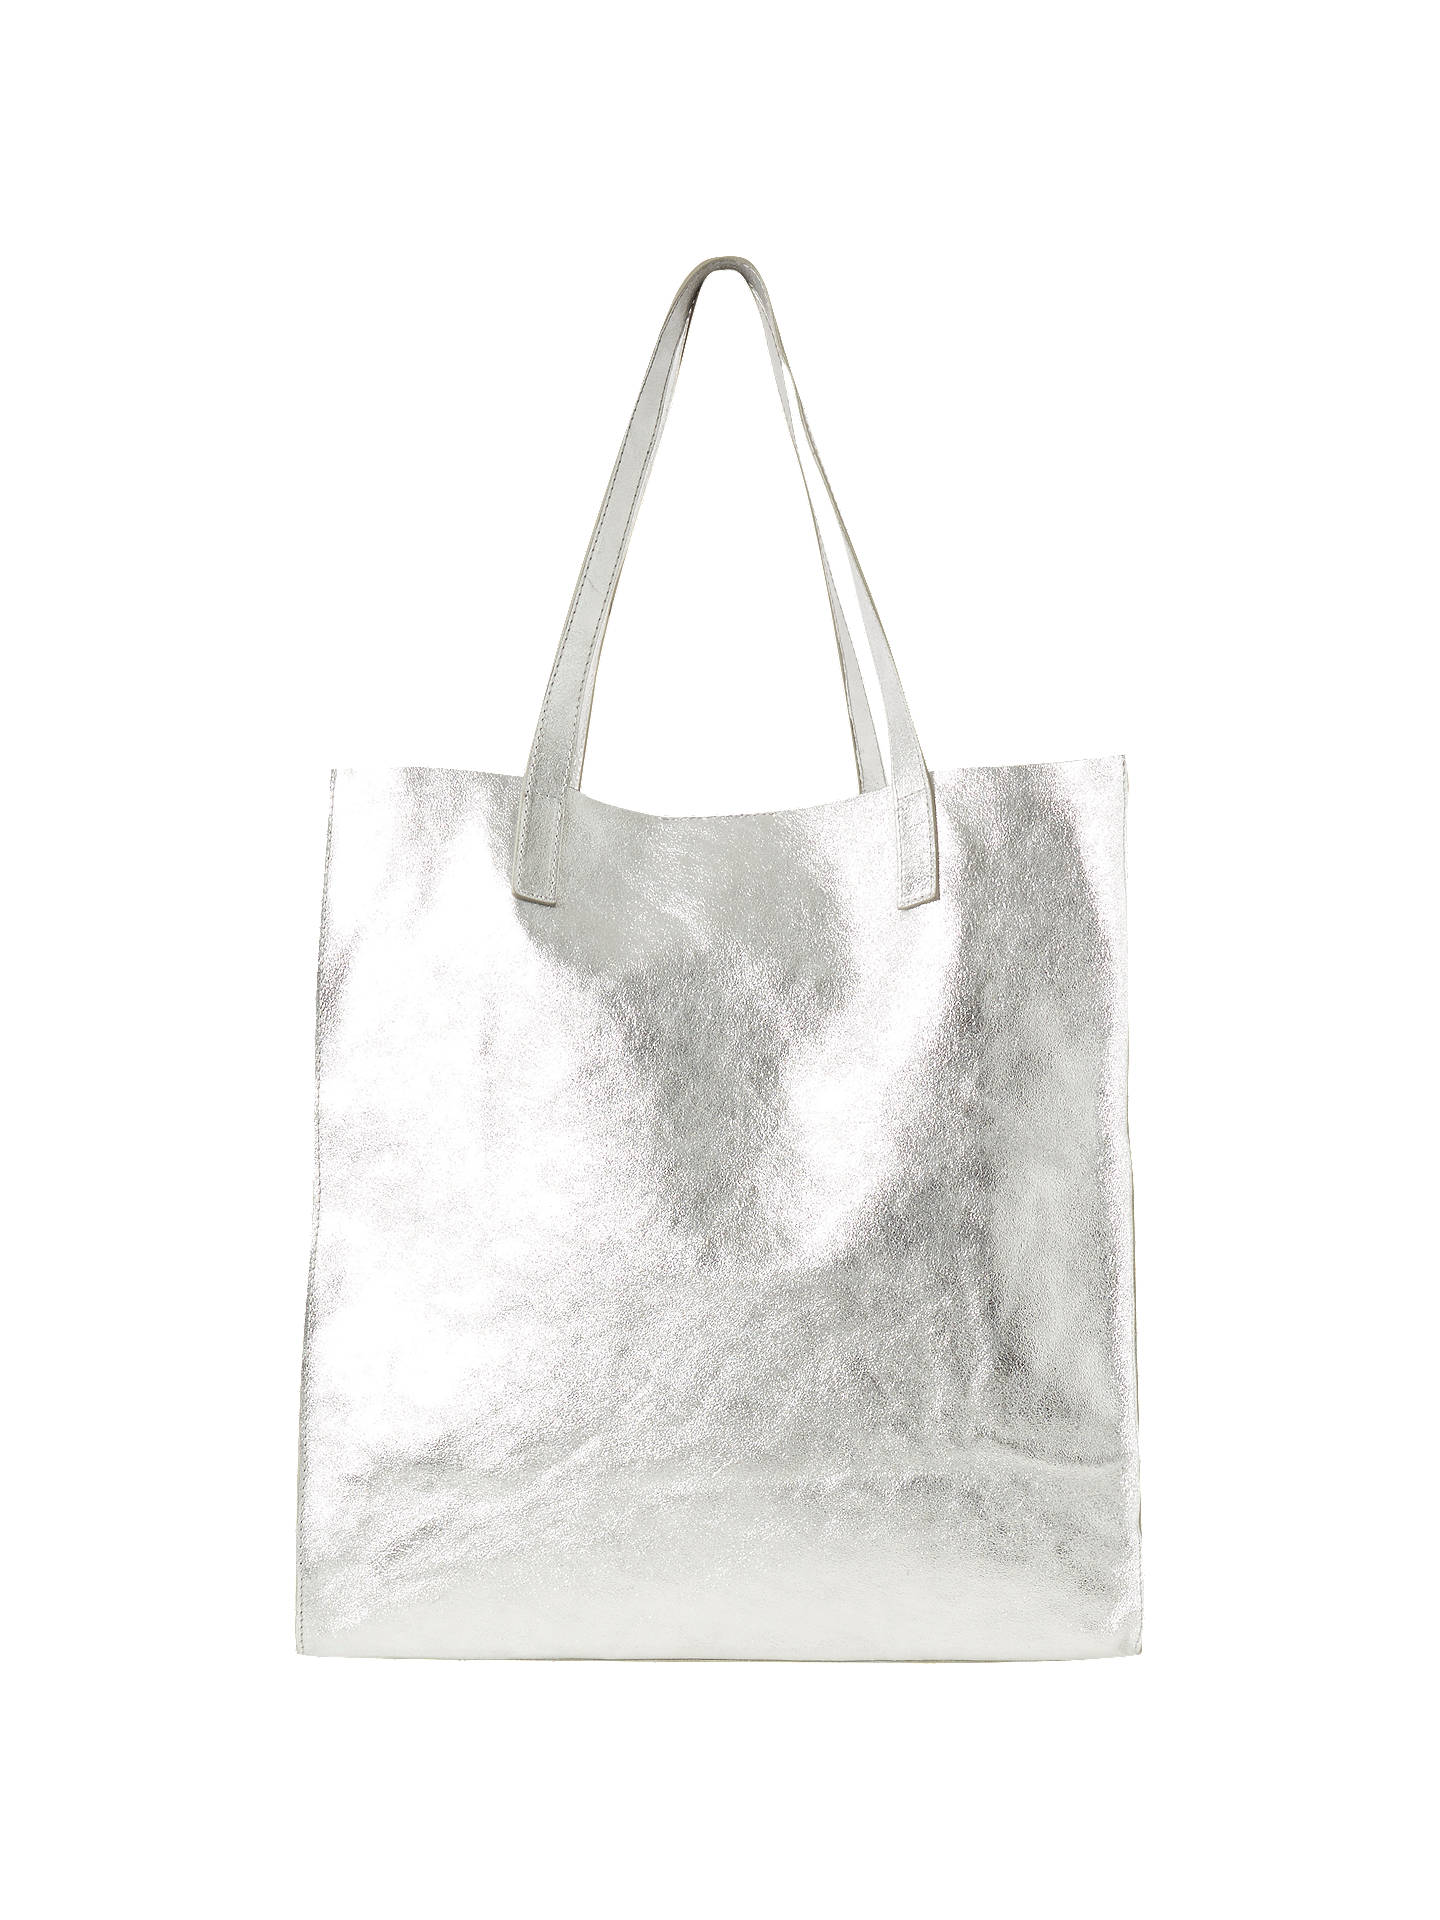 French Connection Miram Tote Bag Silver Online At Johnlewis